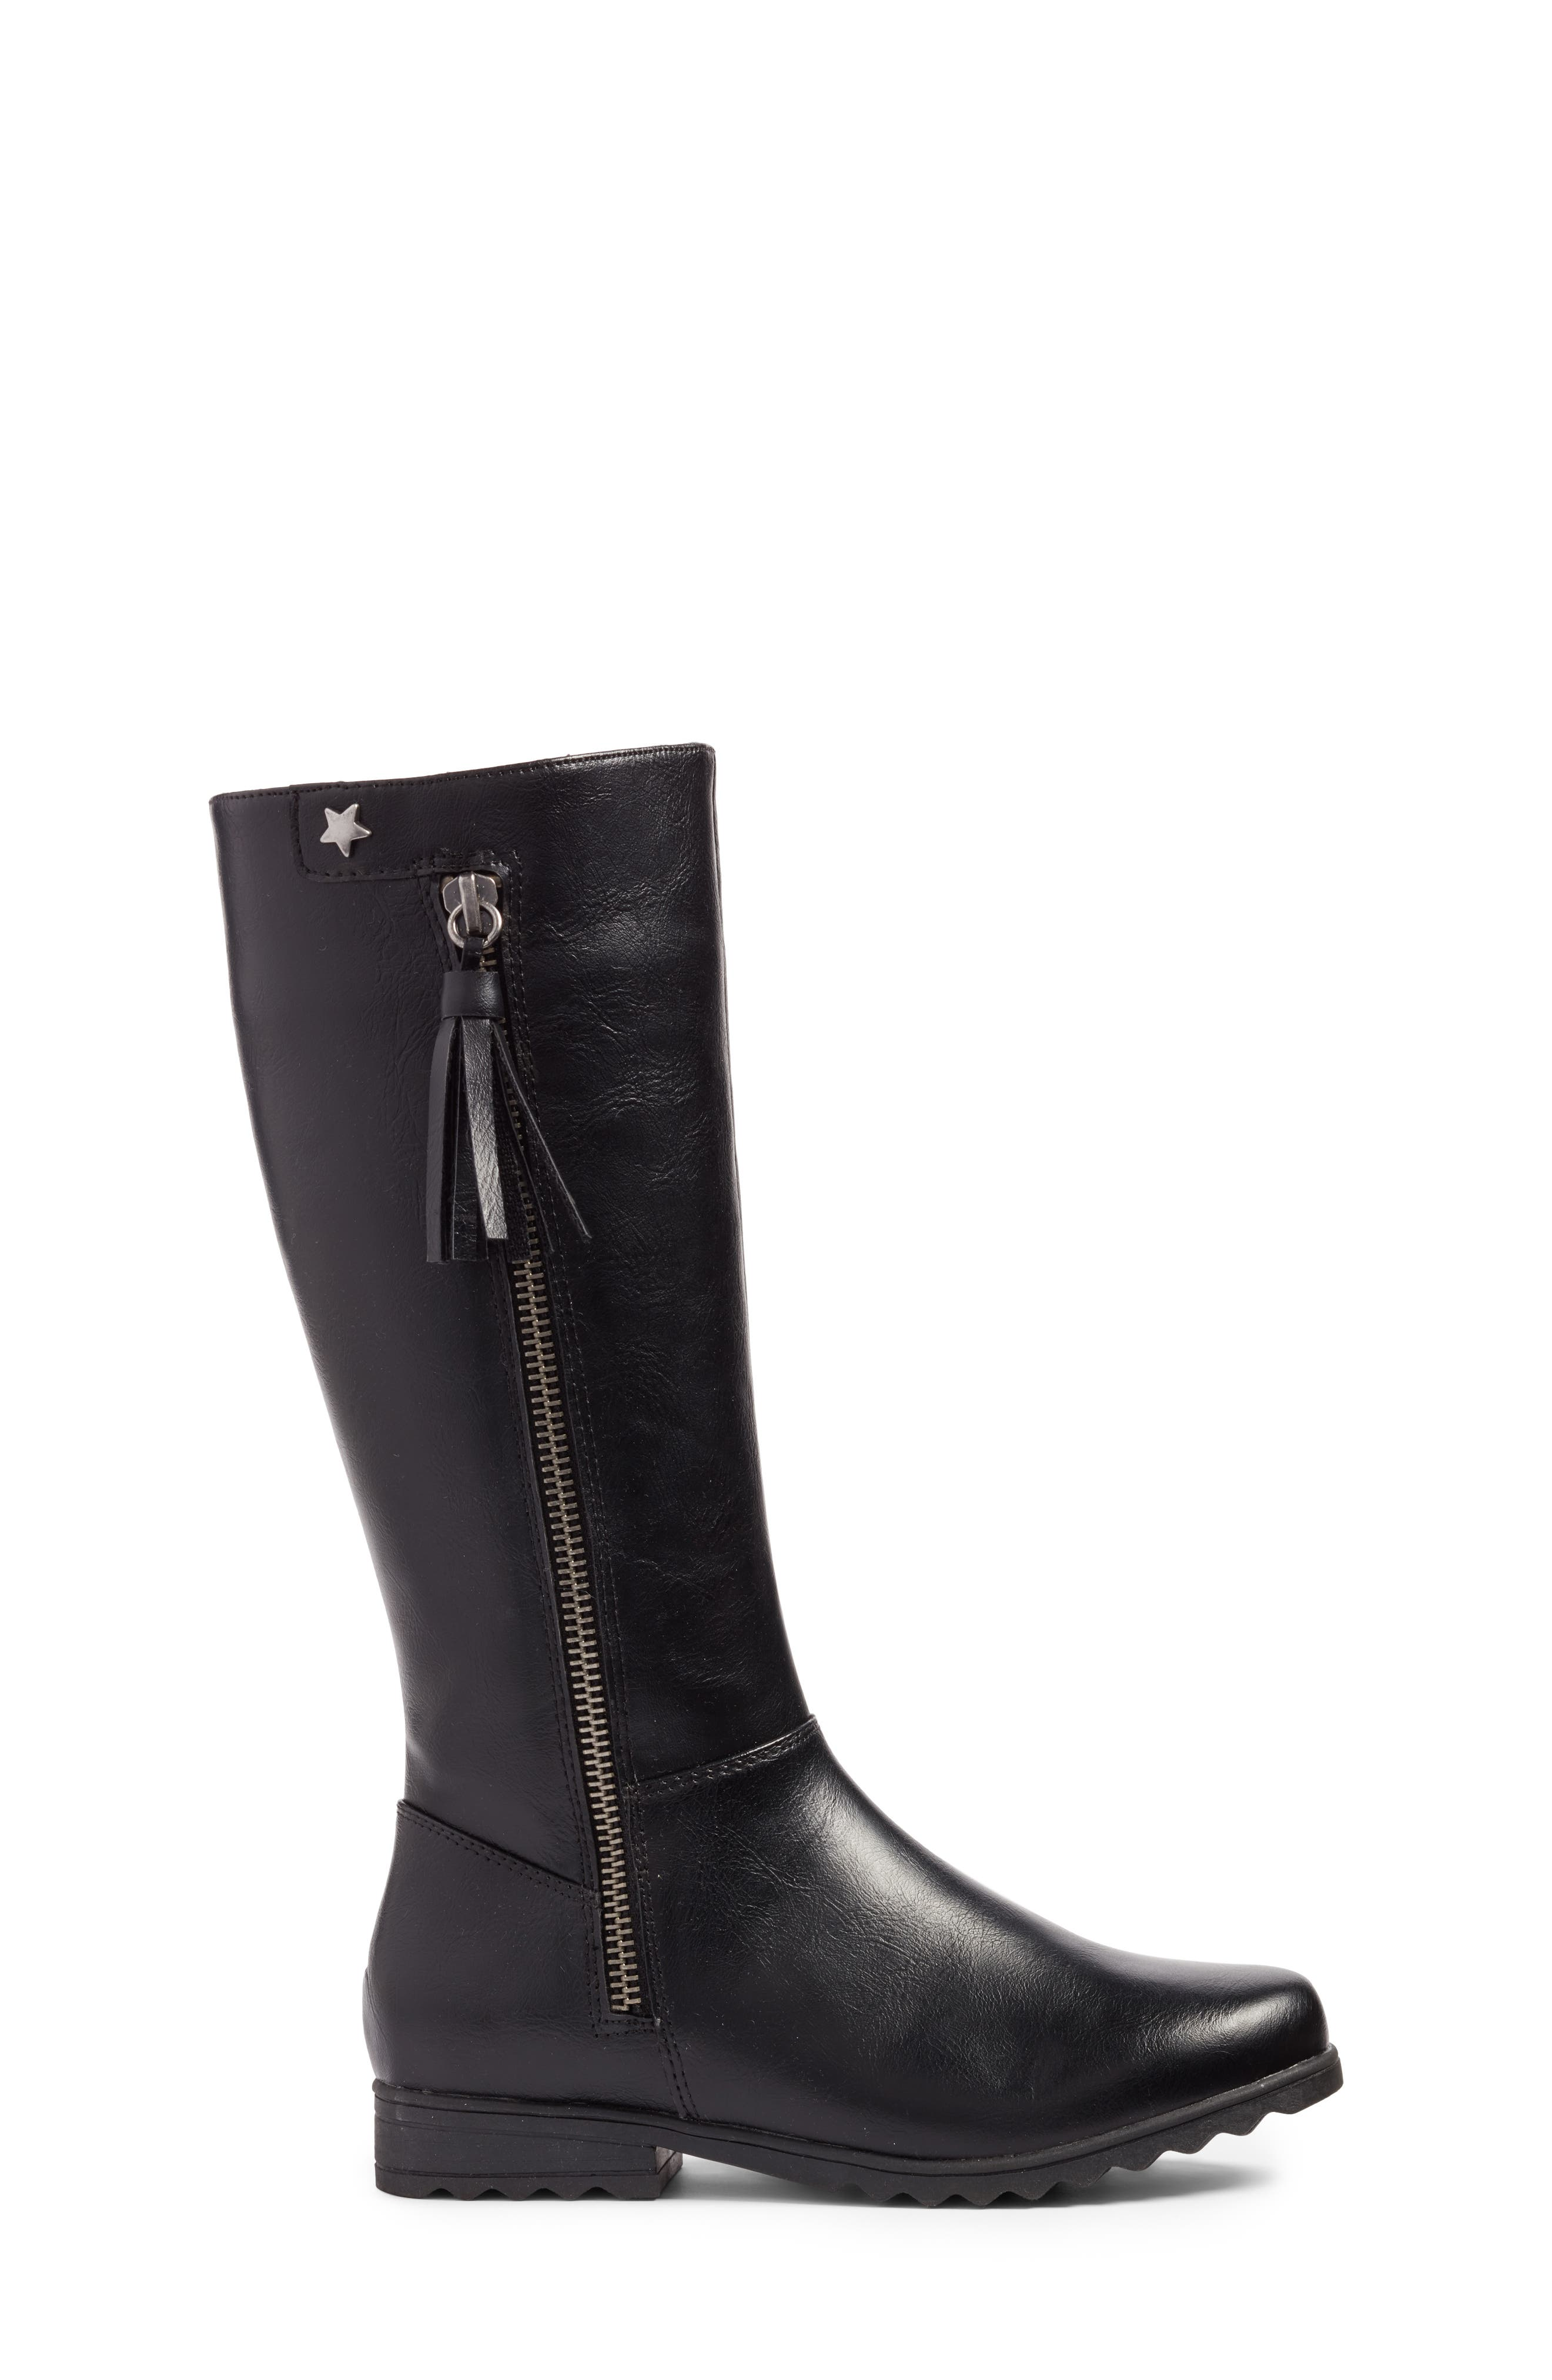 Kelsie Tassel Boot,                             Alternate thumbnail 3, color,                             001